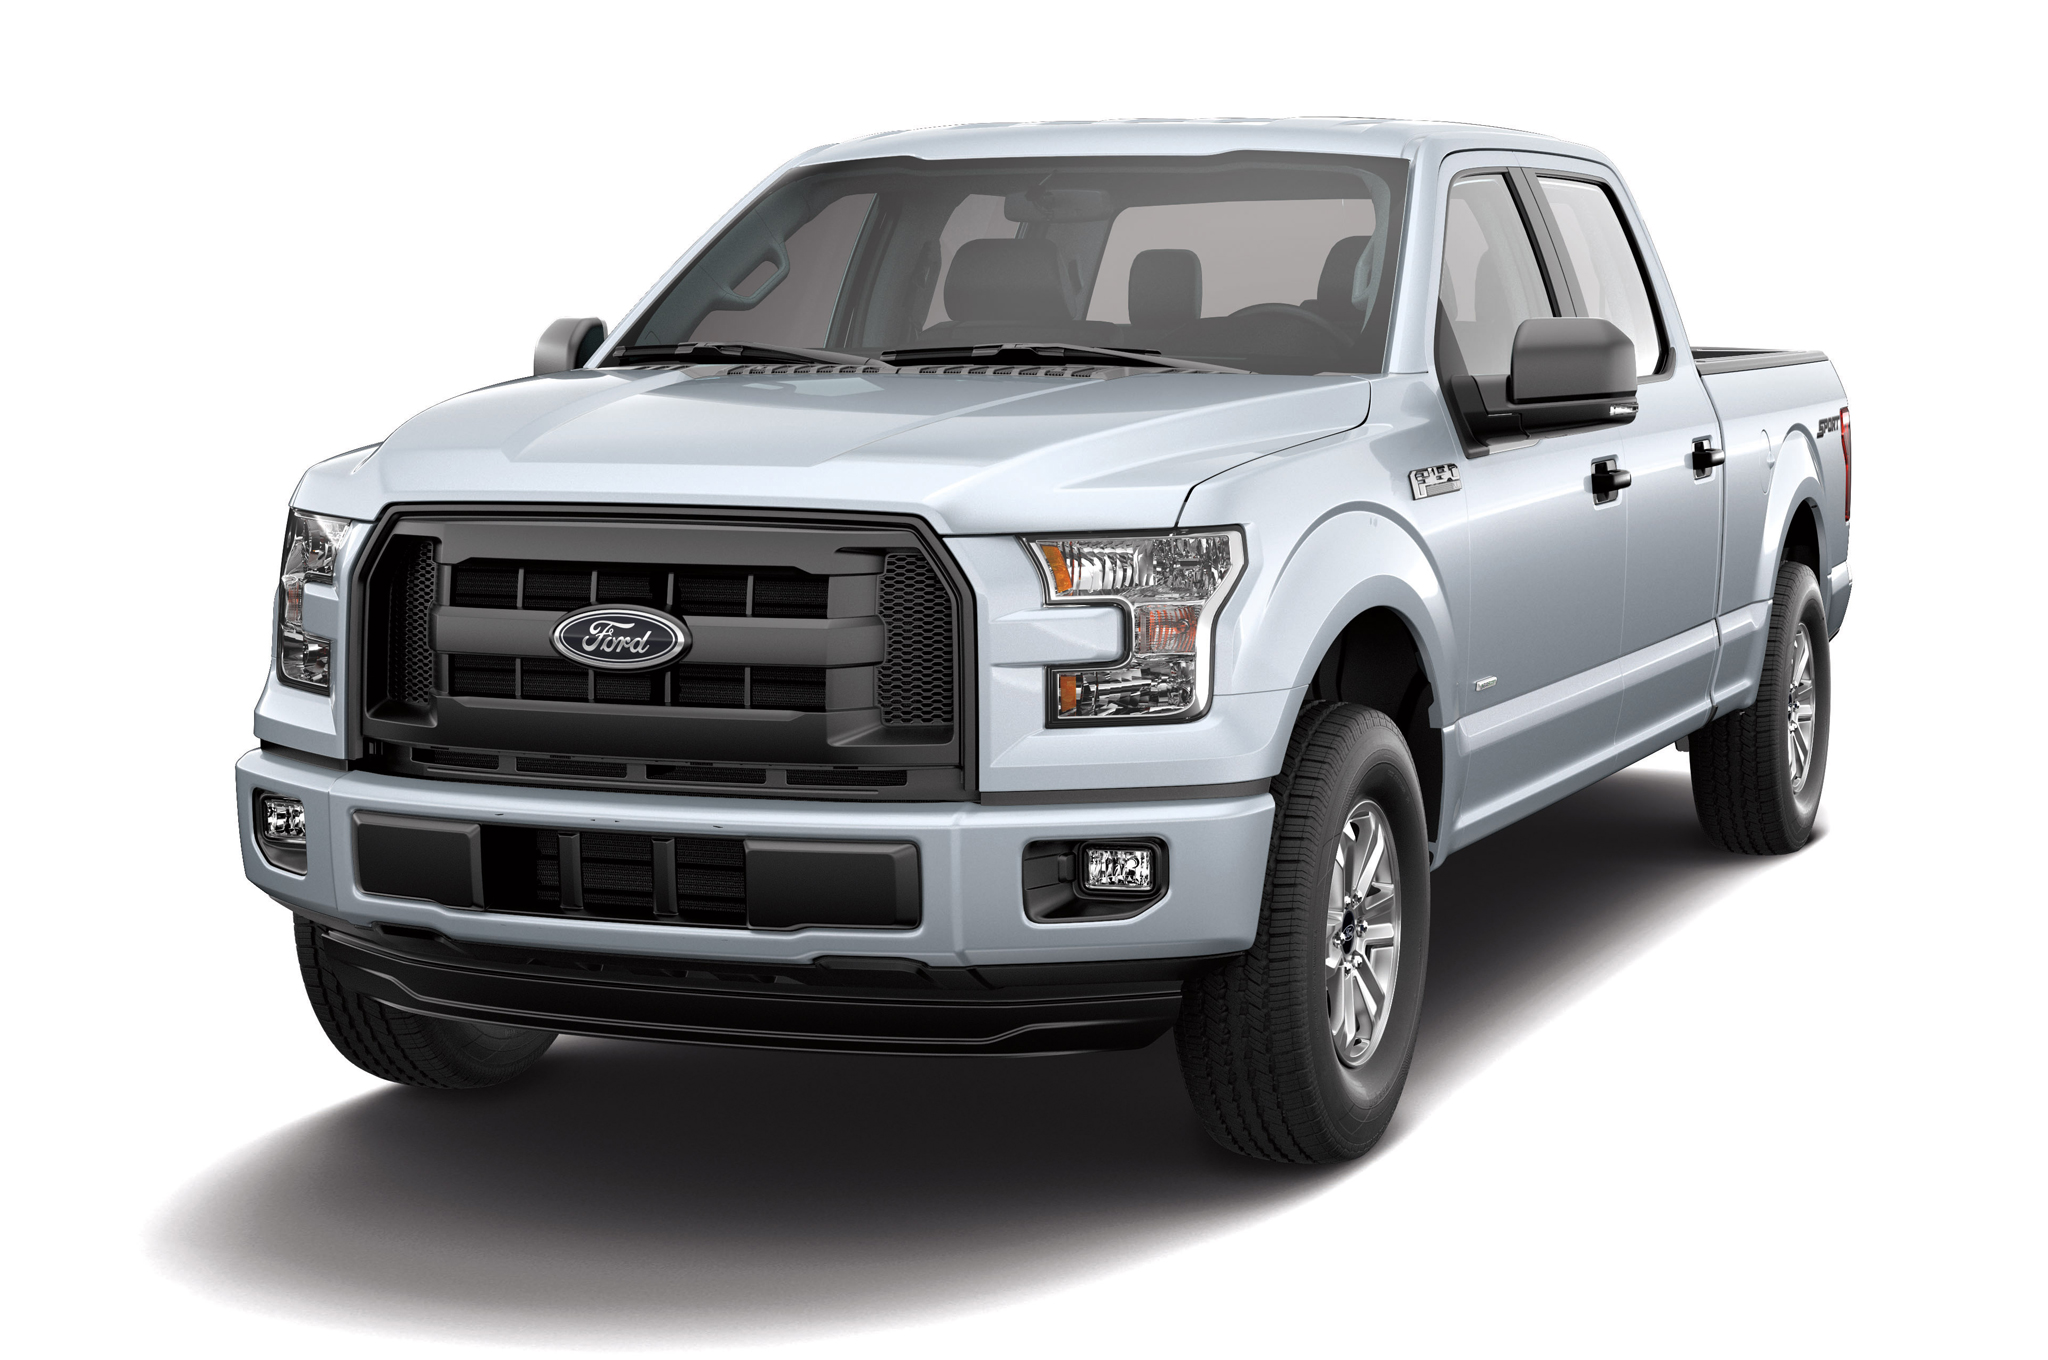 Ford Truck 2015 photo - 4